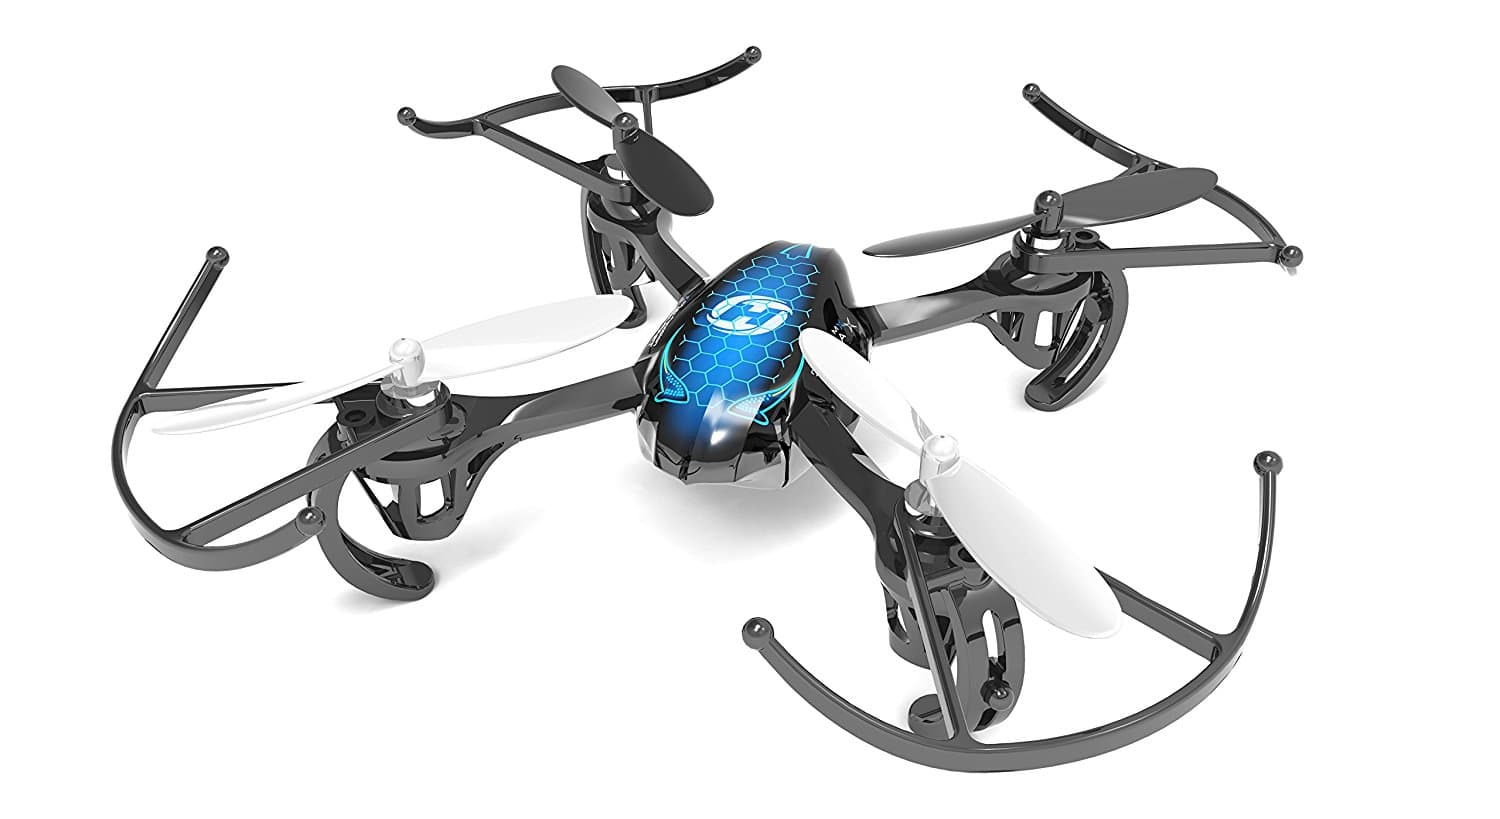 Holy Stone HS170 Predator Mini RC Helicopter Drone 2.4Ghz 6-Axis Gyro 4 Channels Quadcopter Good Choice for Drone Training $30 Shipped @ Amazon Deal Of The Day